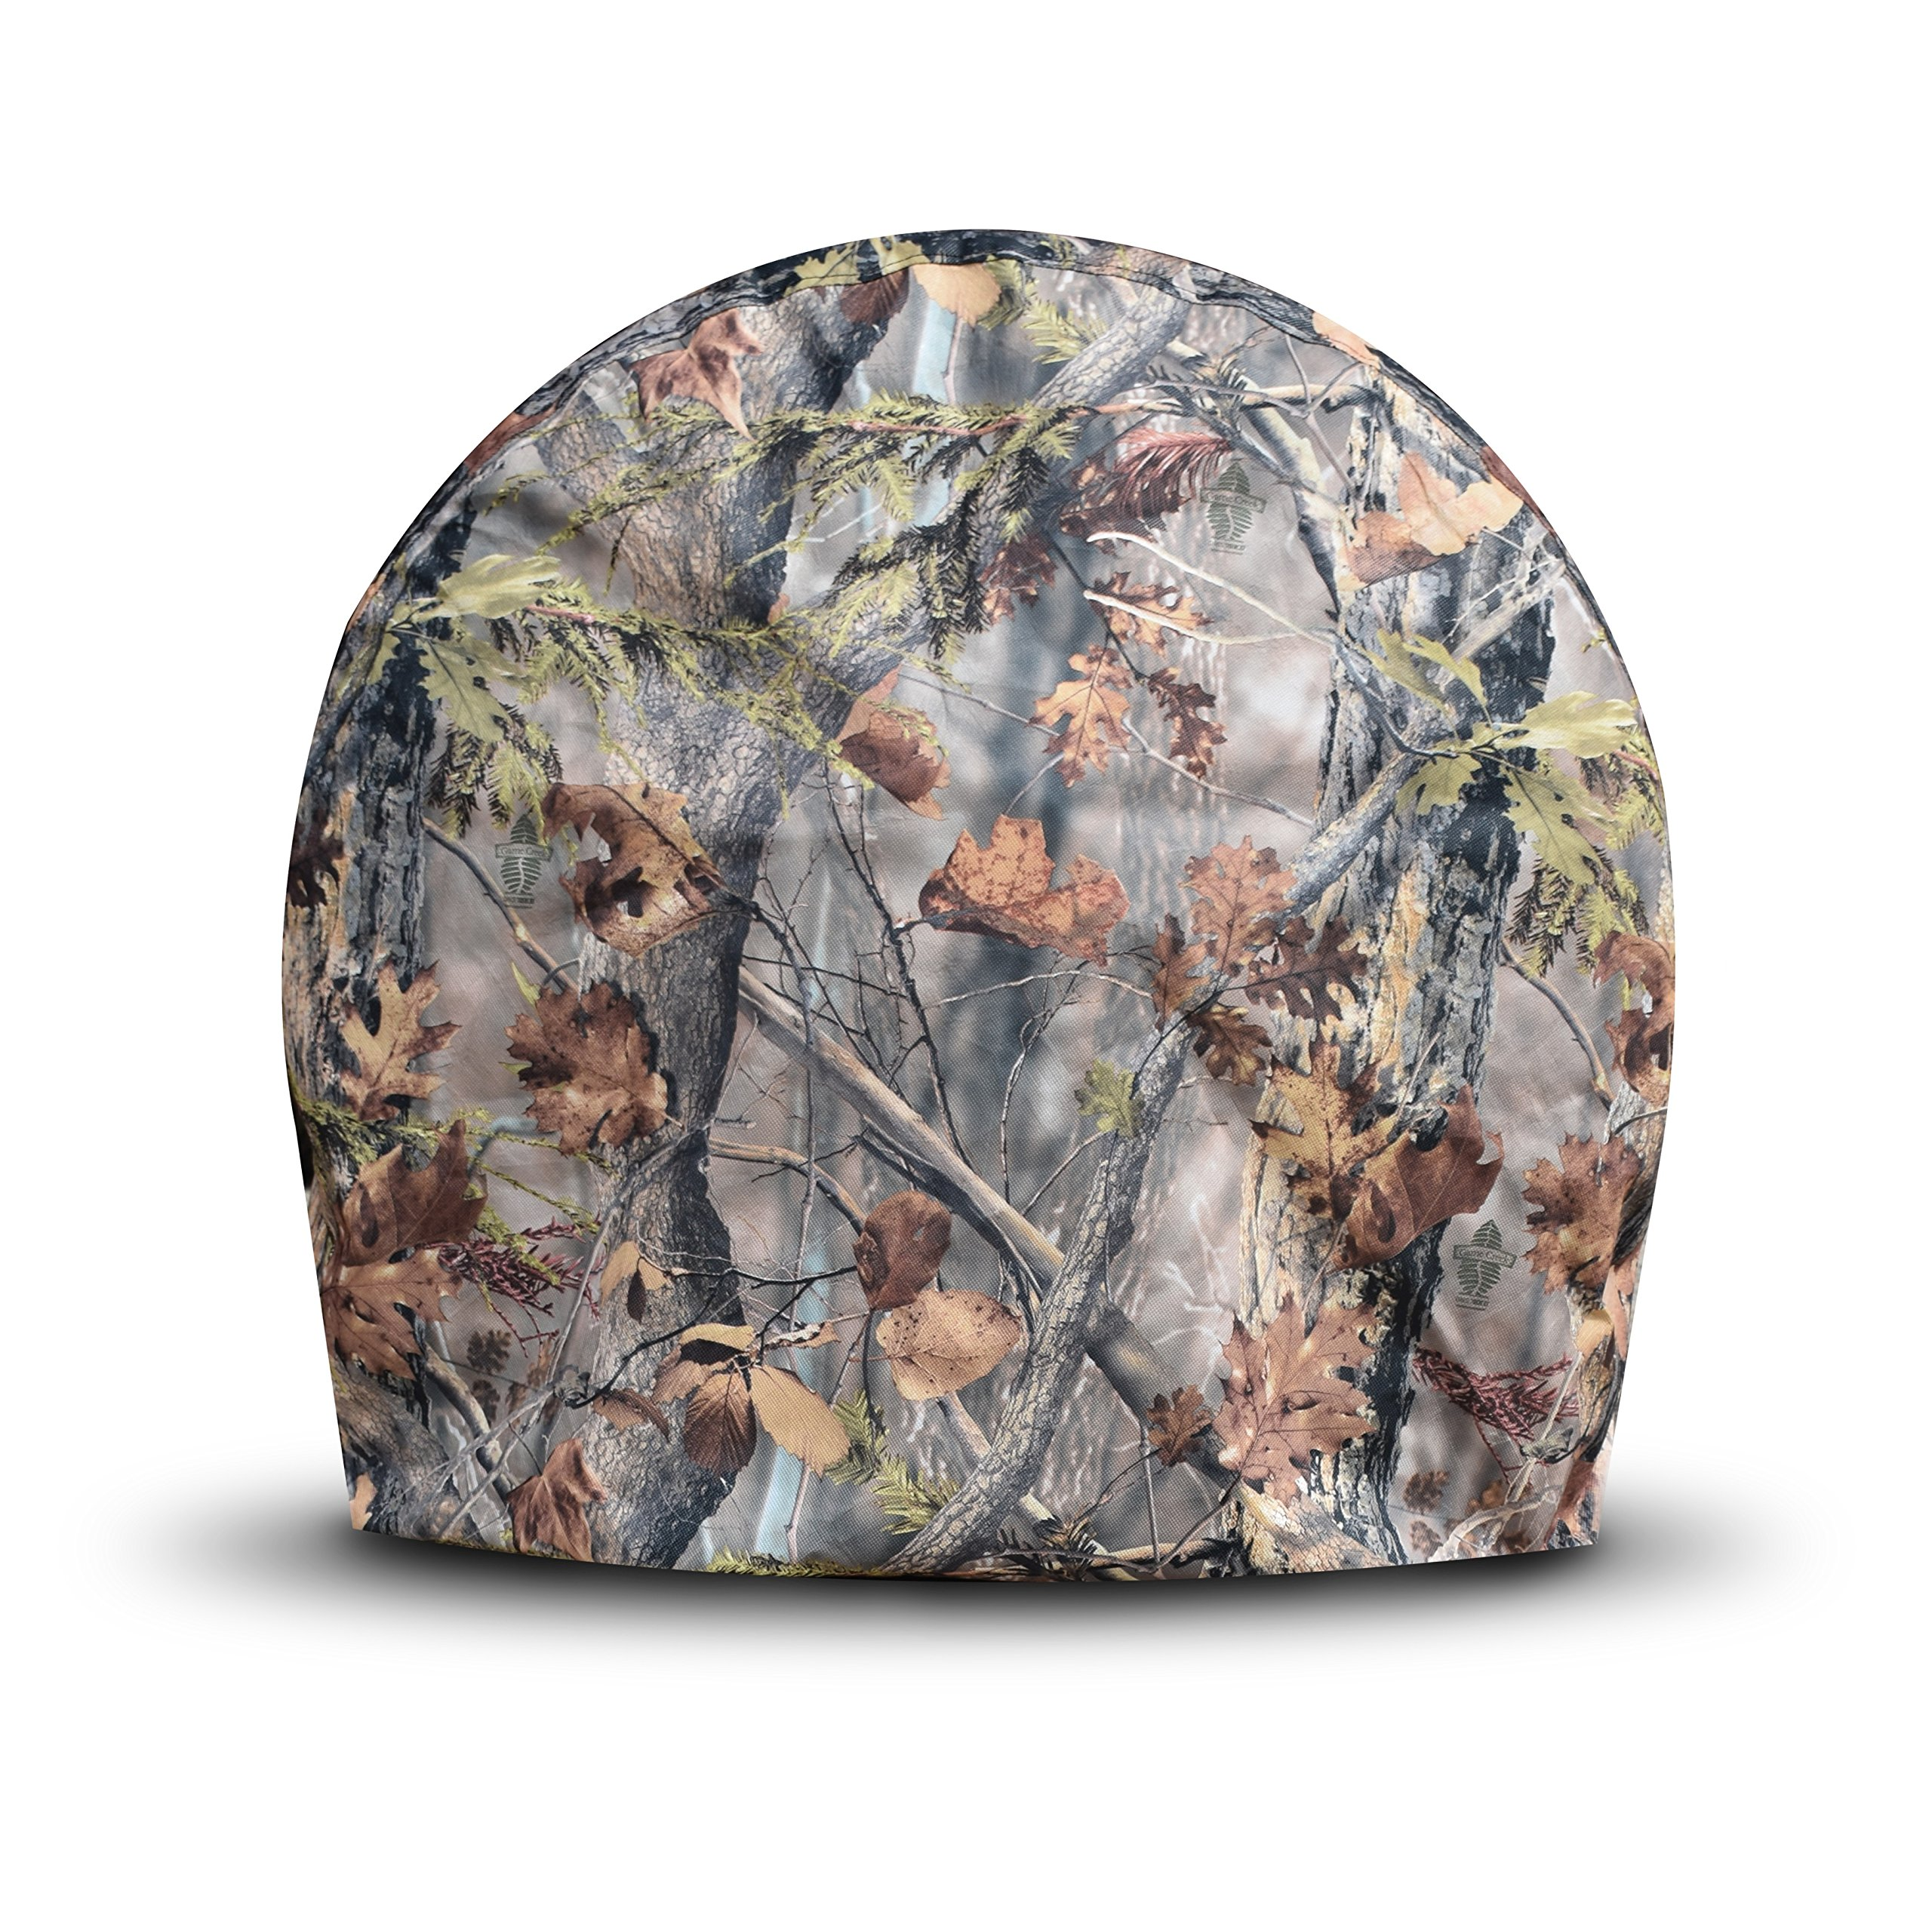 ADCO 3650 Camouflage #XL Game Creek Oaks Tyre Gard Wheel Cover, (Set of 2) (Fits 36''-39'') by ADCO